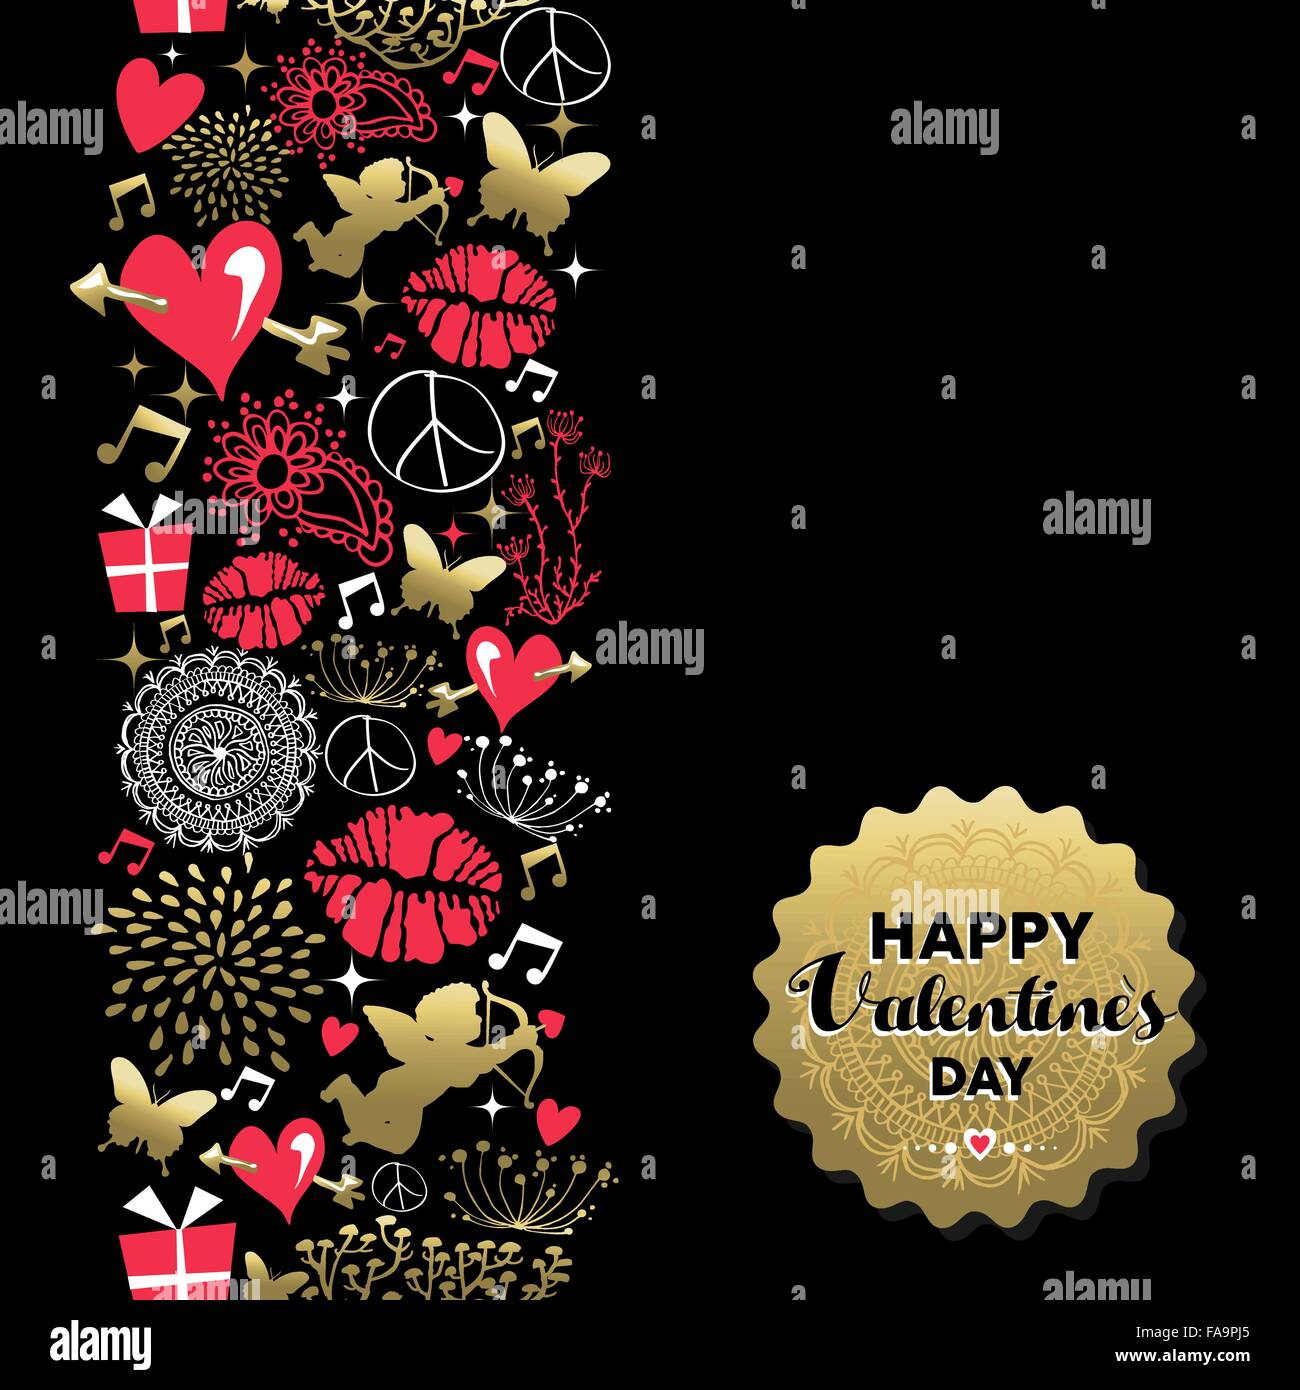 Happy valentines day retro greeting card icon pattern and gold happy valentines day retro greeting card icon pattern and gold text label includes angel heart kiss and nature silhouette kristyandbryce Images